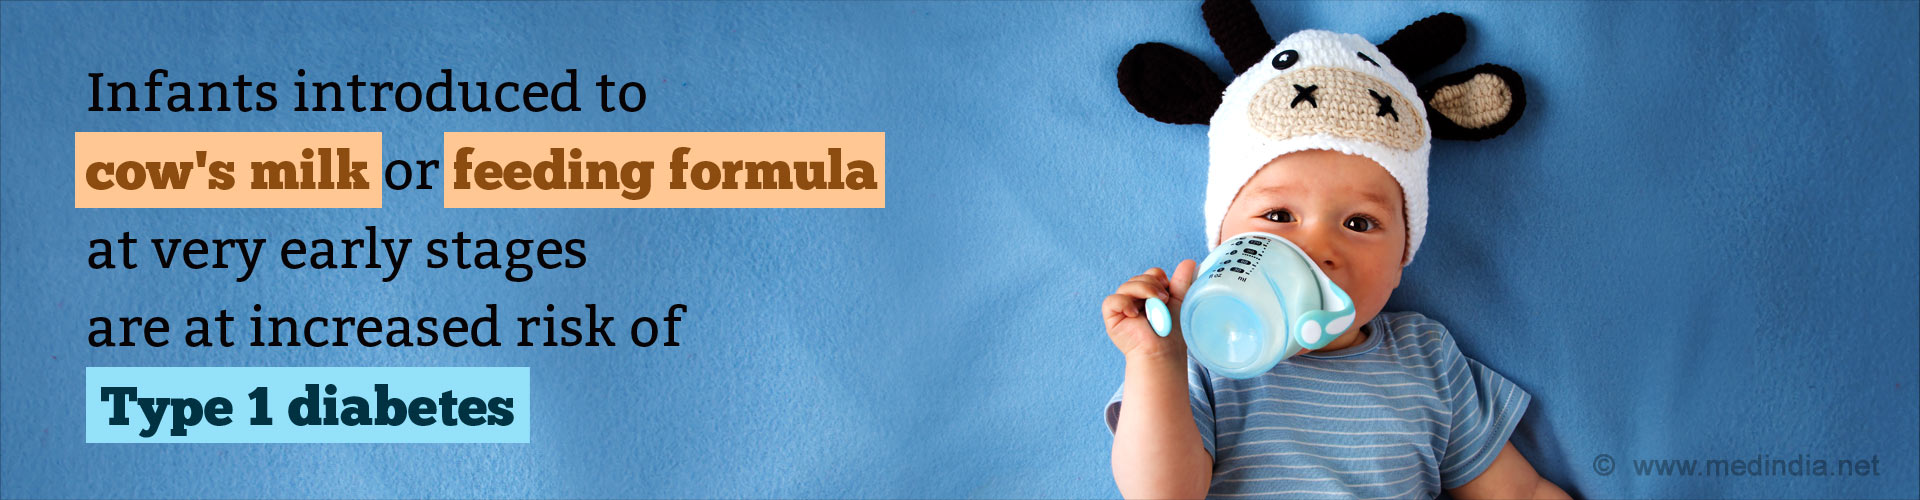 Infants introduced to cow's milk or feeding formula at very early stages are at increased risk of Type 1 diabetes